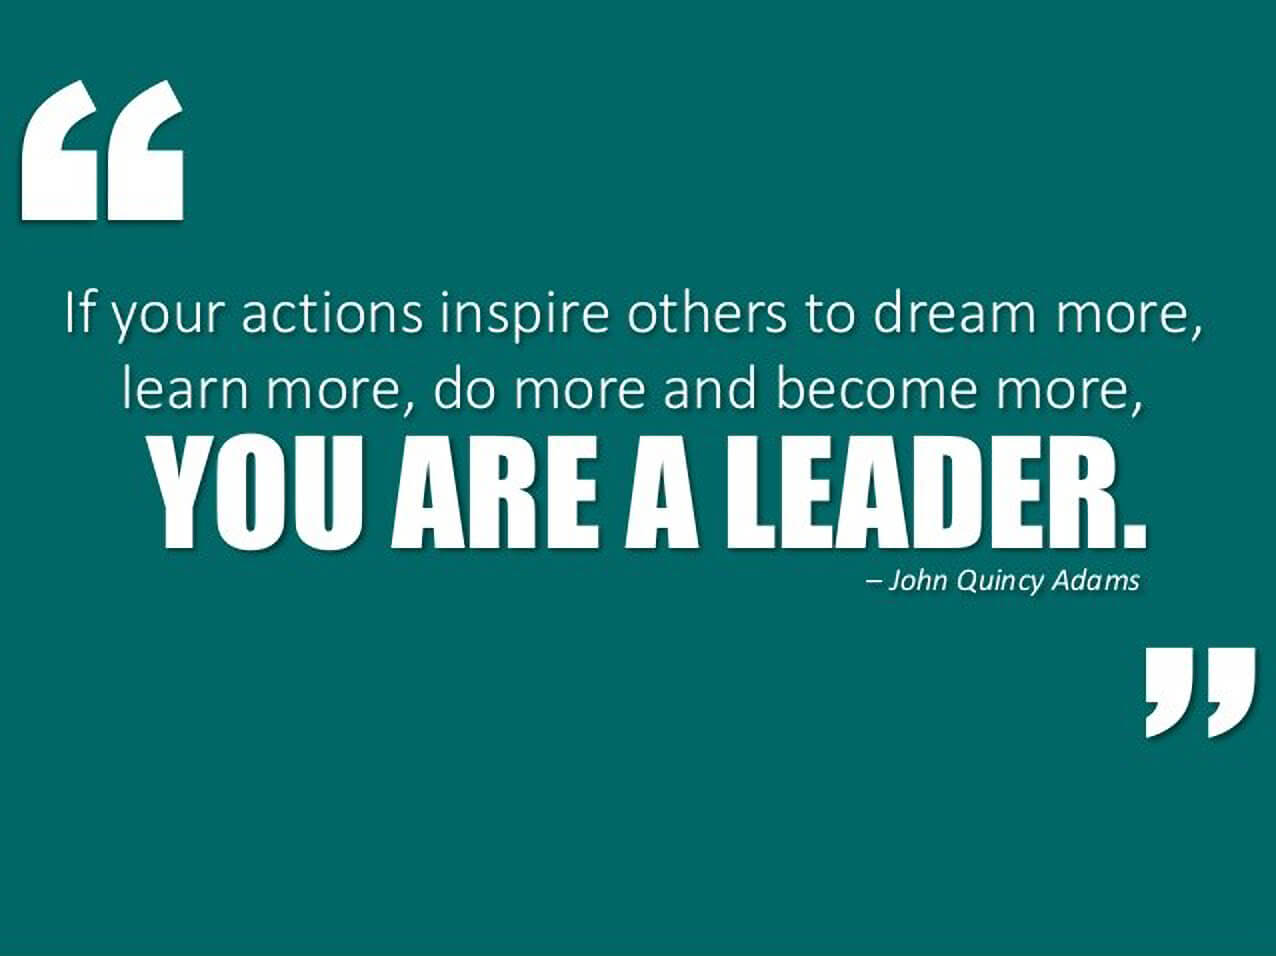 If your actions inspire others to dream more, learn more, do more and become more, your are a leader. - John Quincy Adams